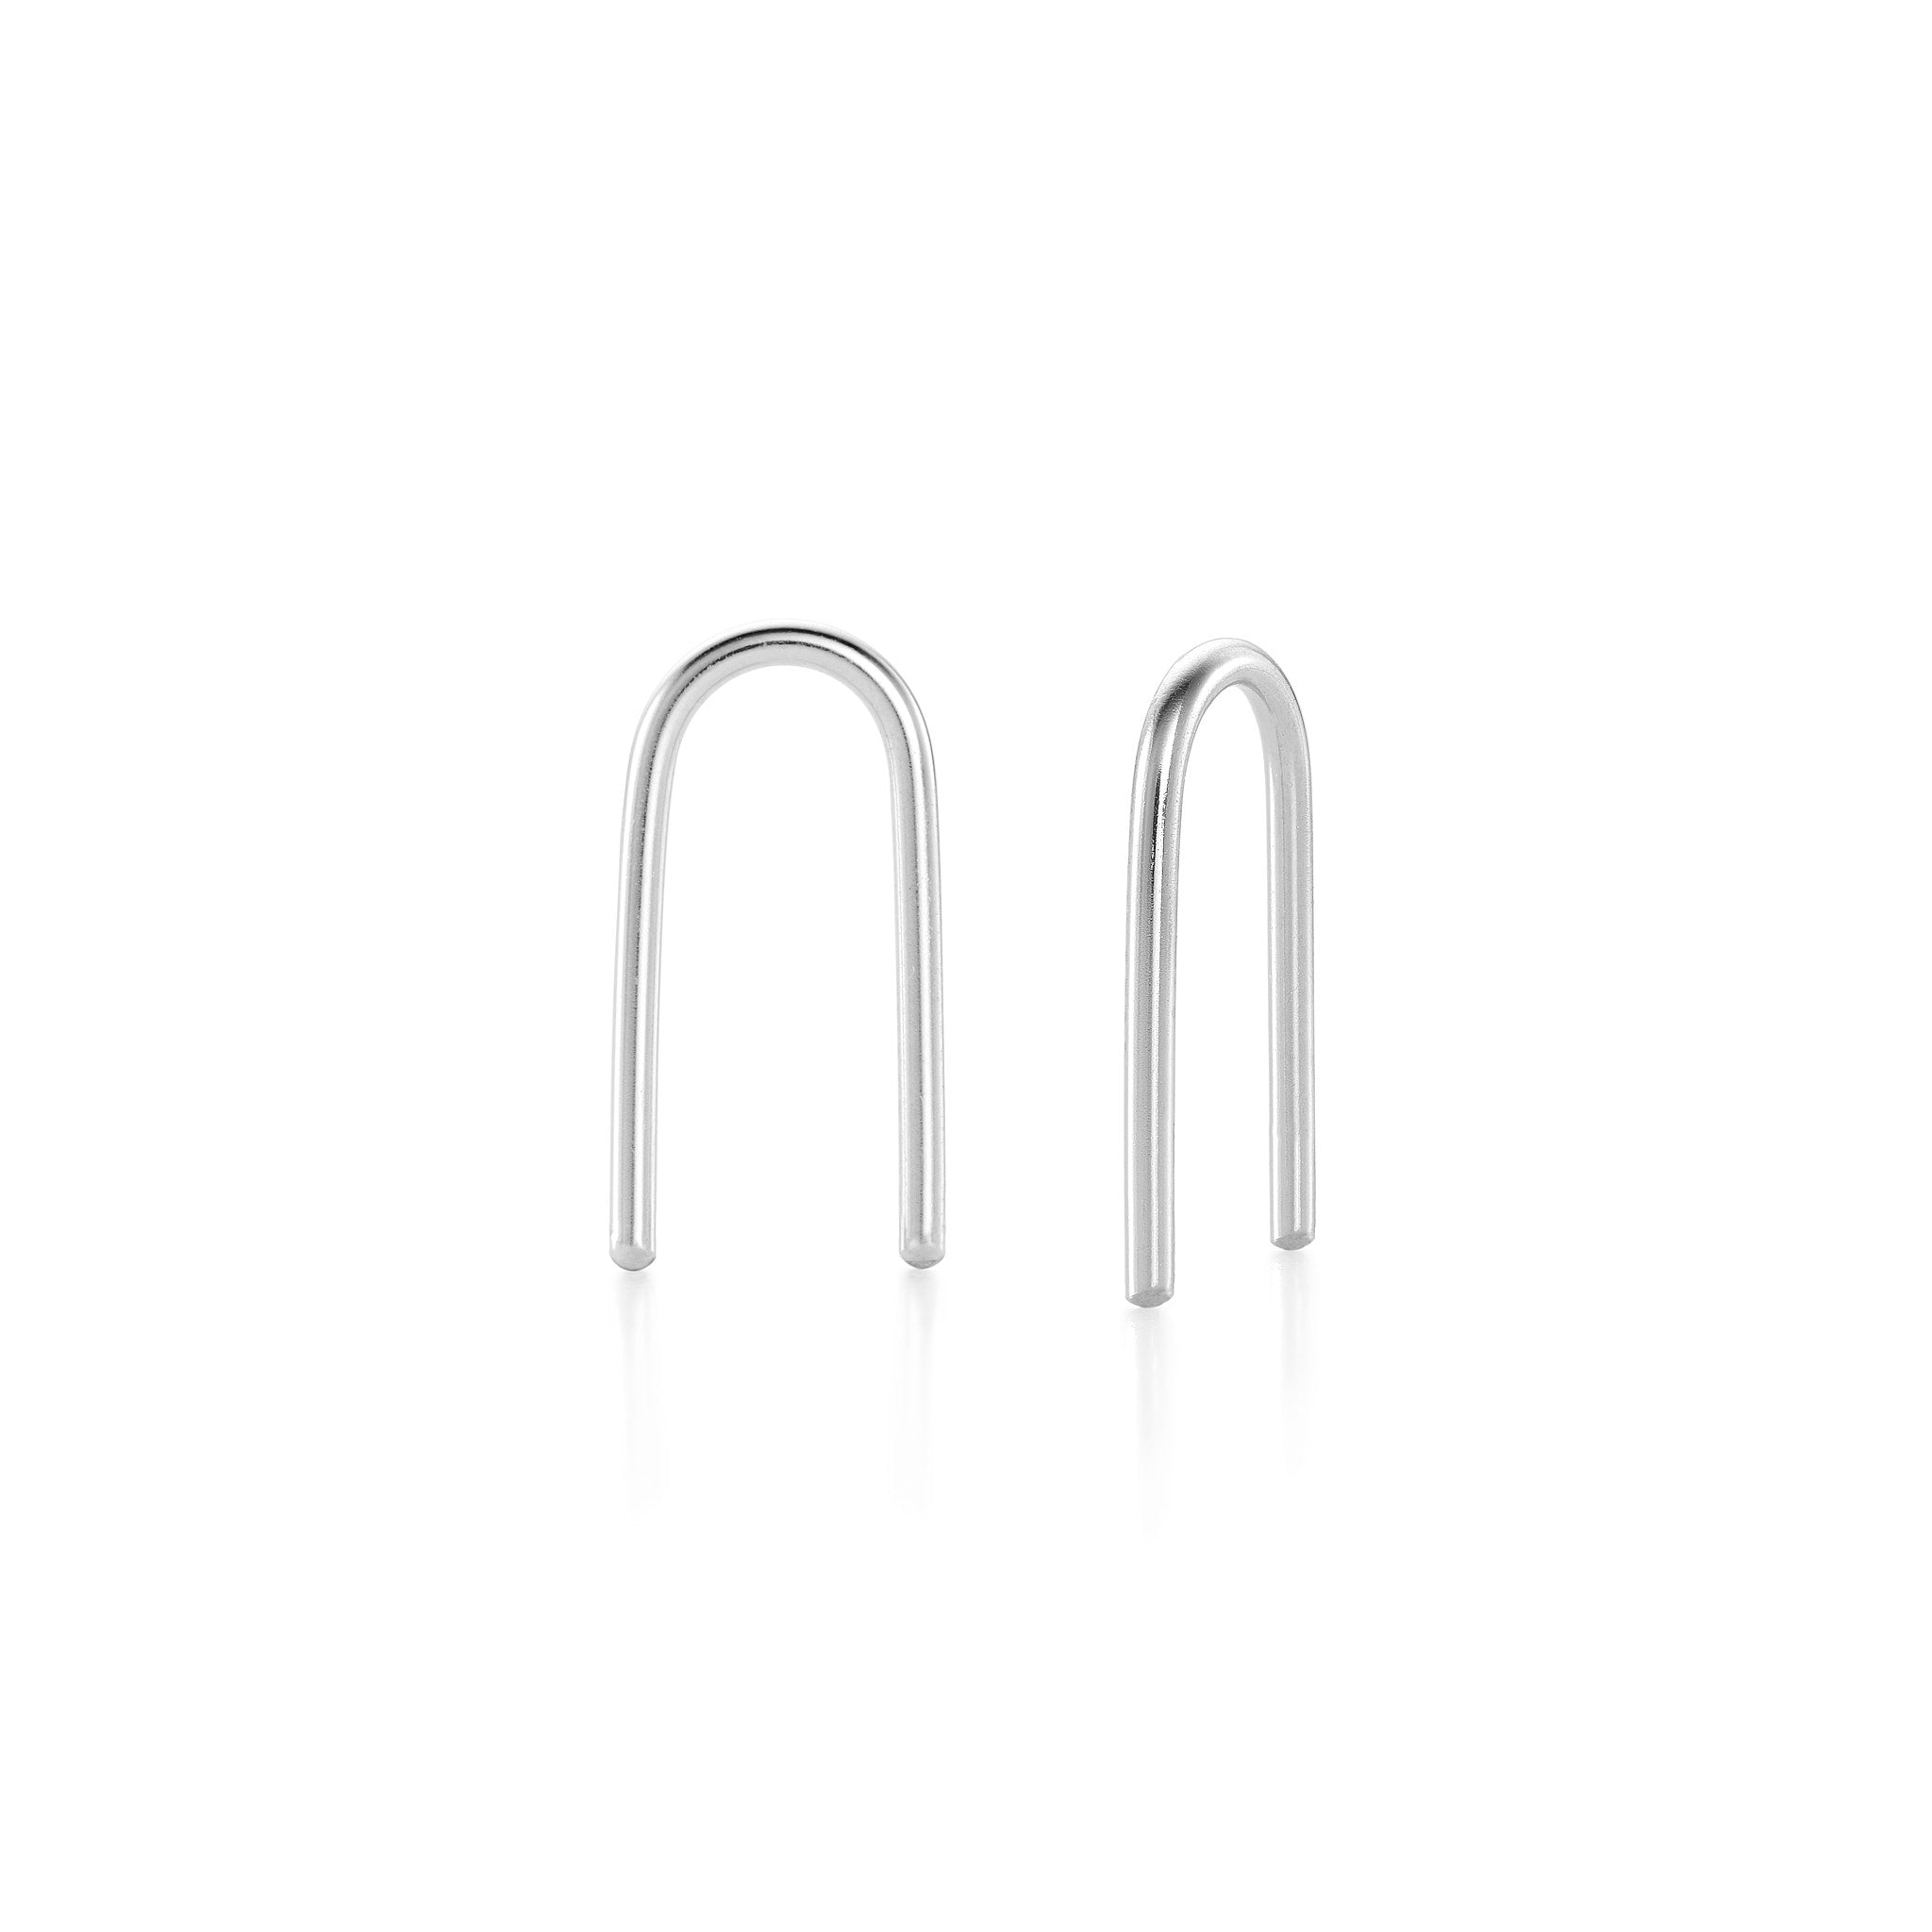 U-Shaped Earrings - Silver